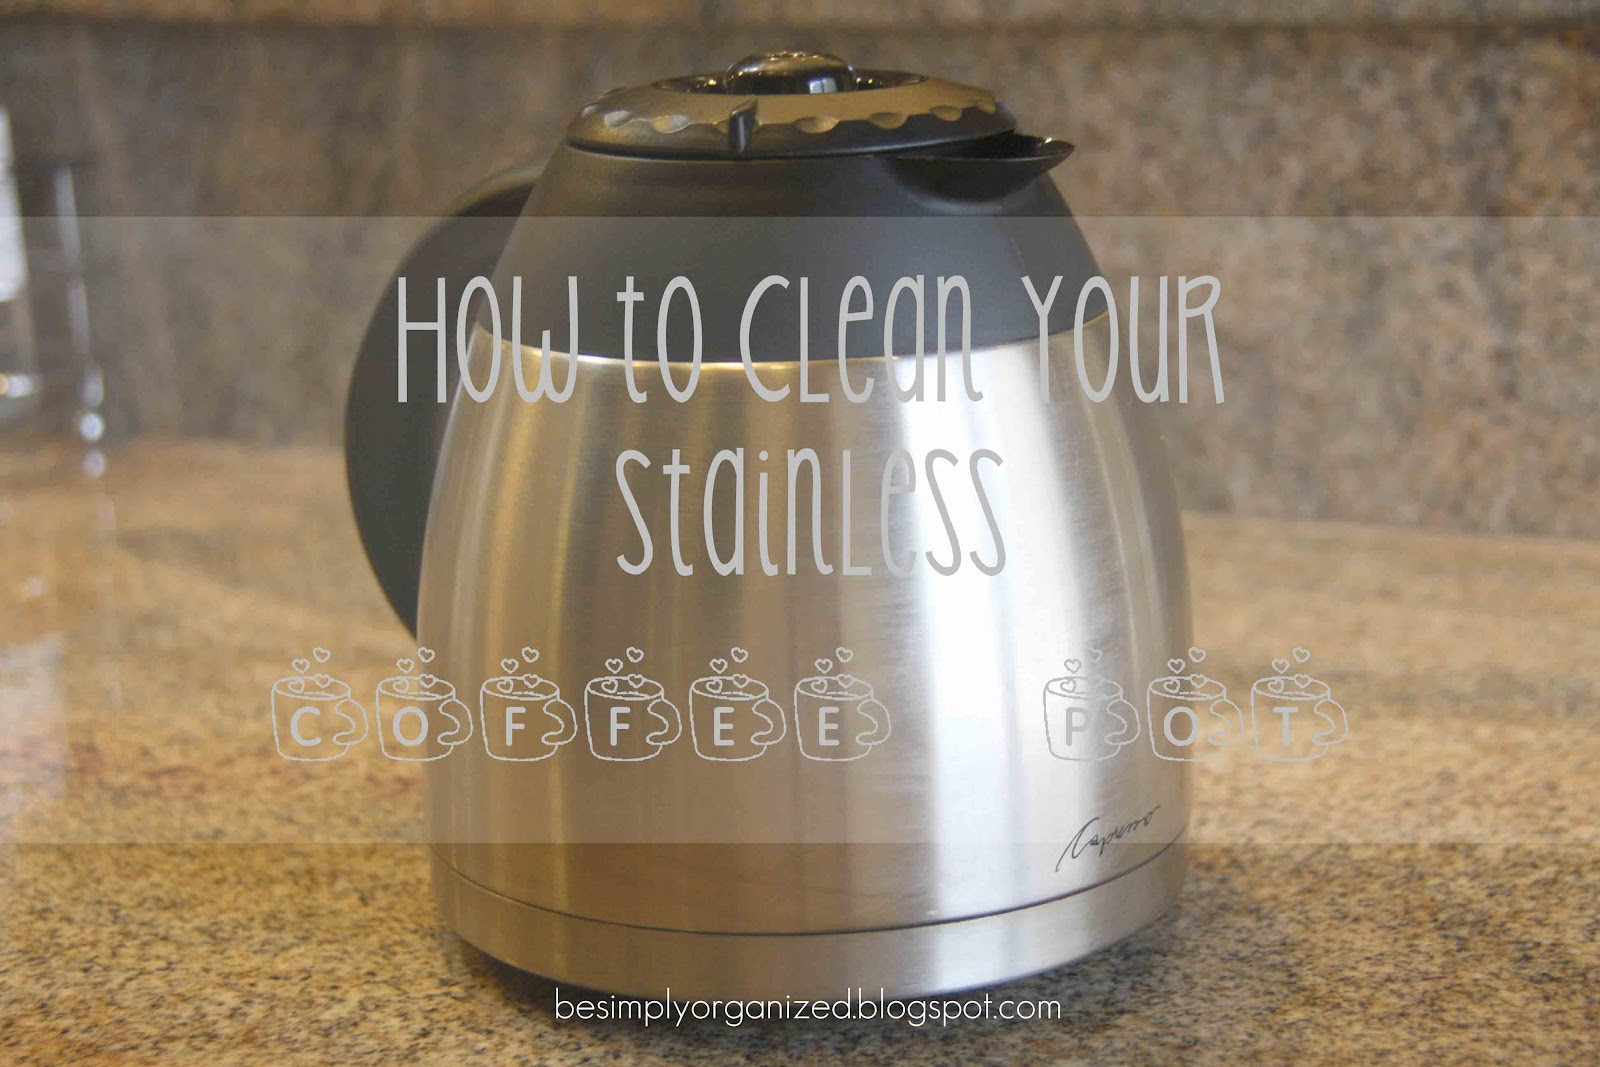 Coffee Pot Stains Cleaning : simply organized: how to clean a stainless coffee pot